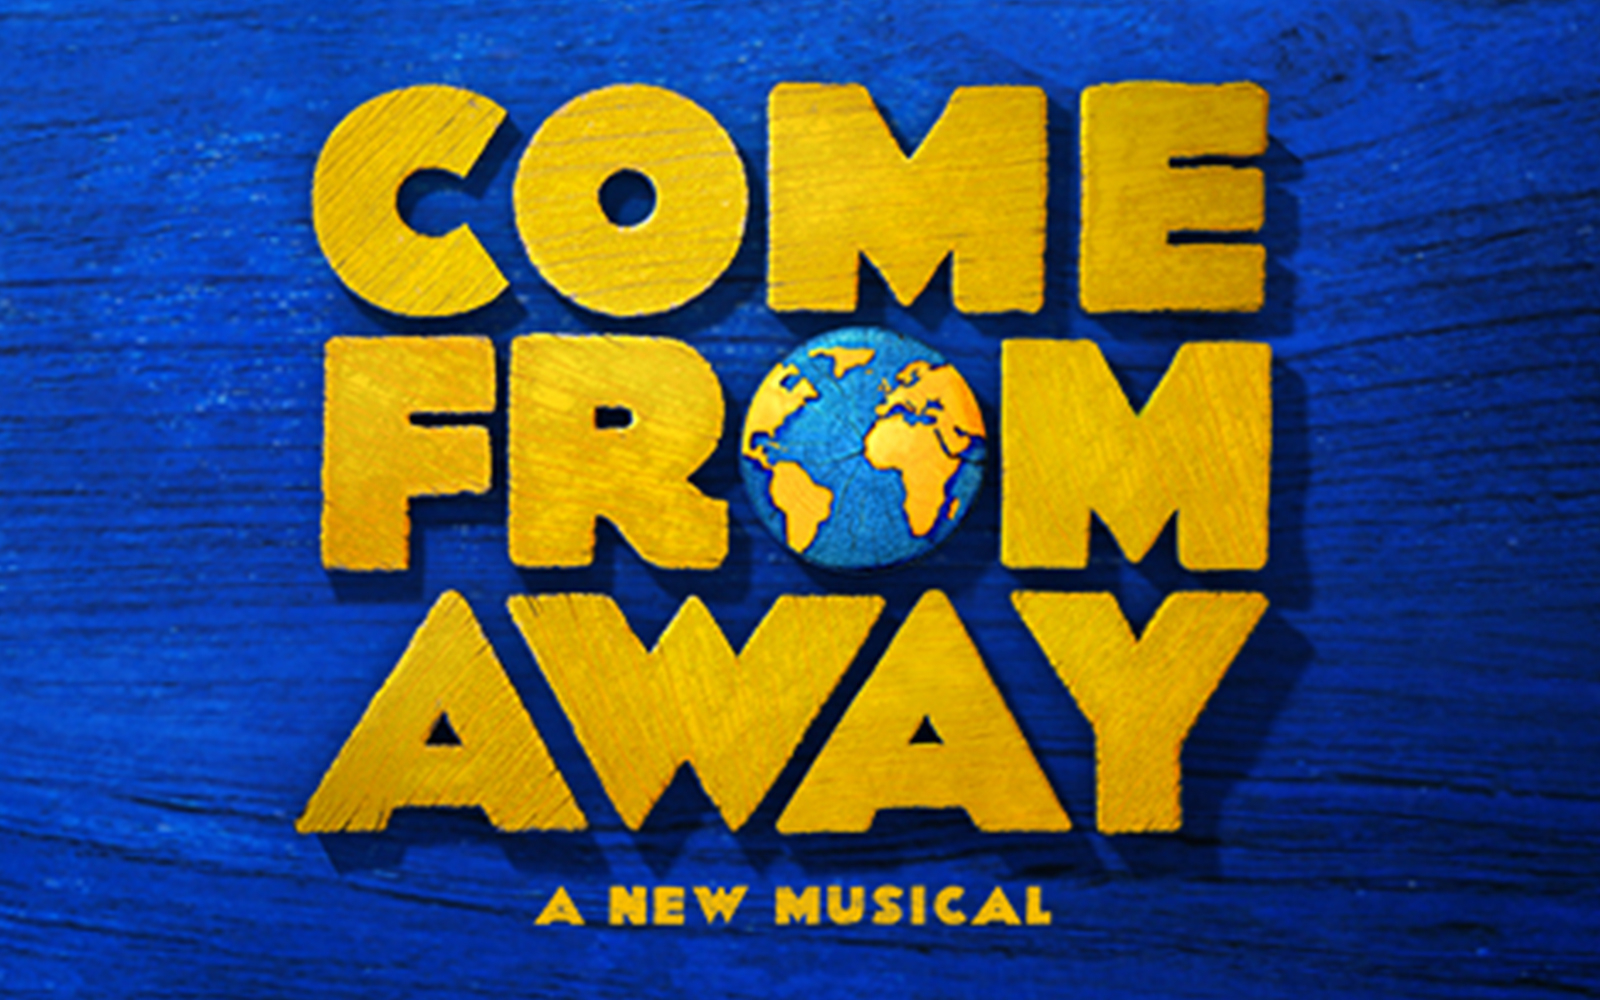 1a6aab69 a6ec 40d3 8287 80acb1d4ed17 9667 london come from away 01